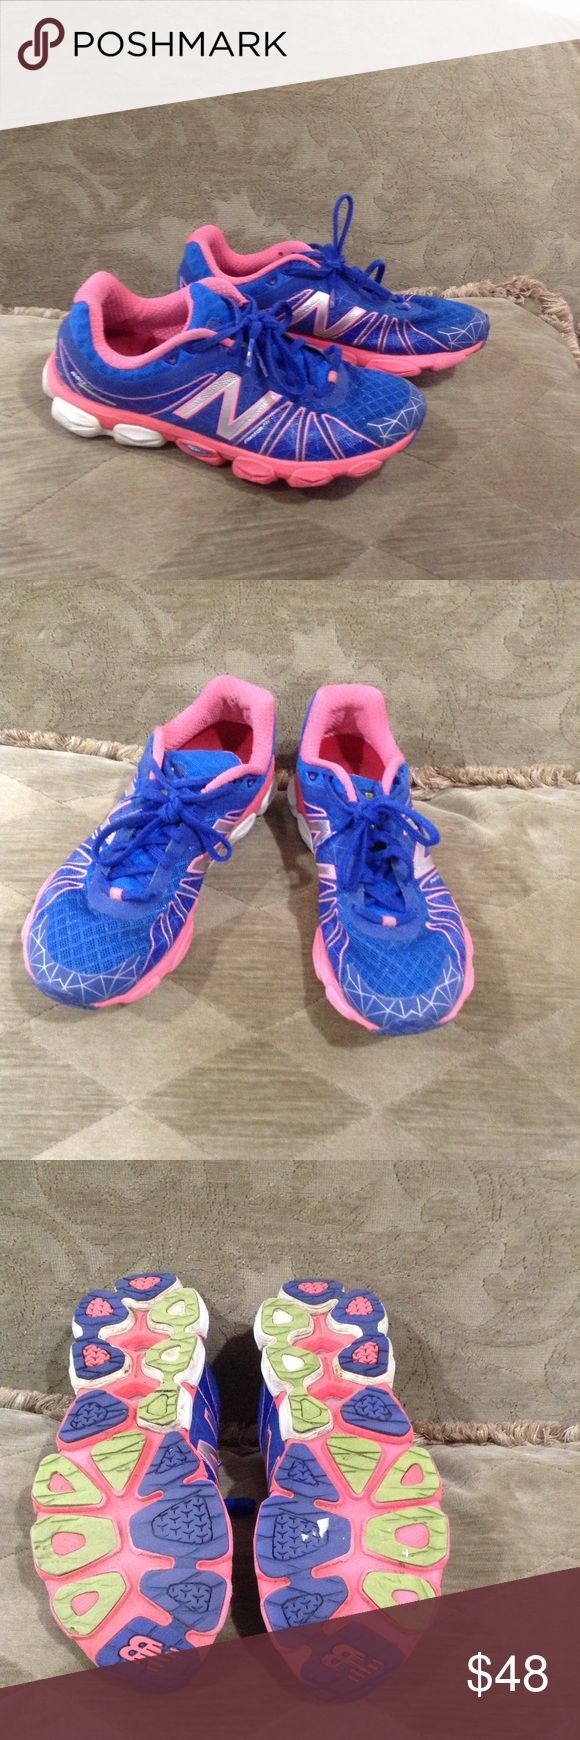 New Balance Fantom Fit Great New Balance 890 Barringer. Blue and pink in great condition. Size 9.5 New Balance Shoes Sneakers